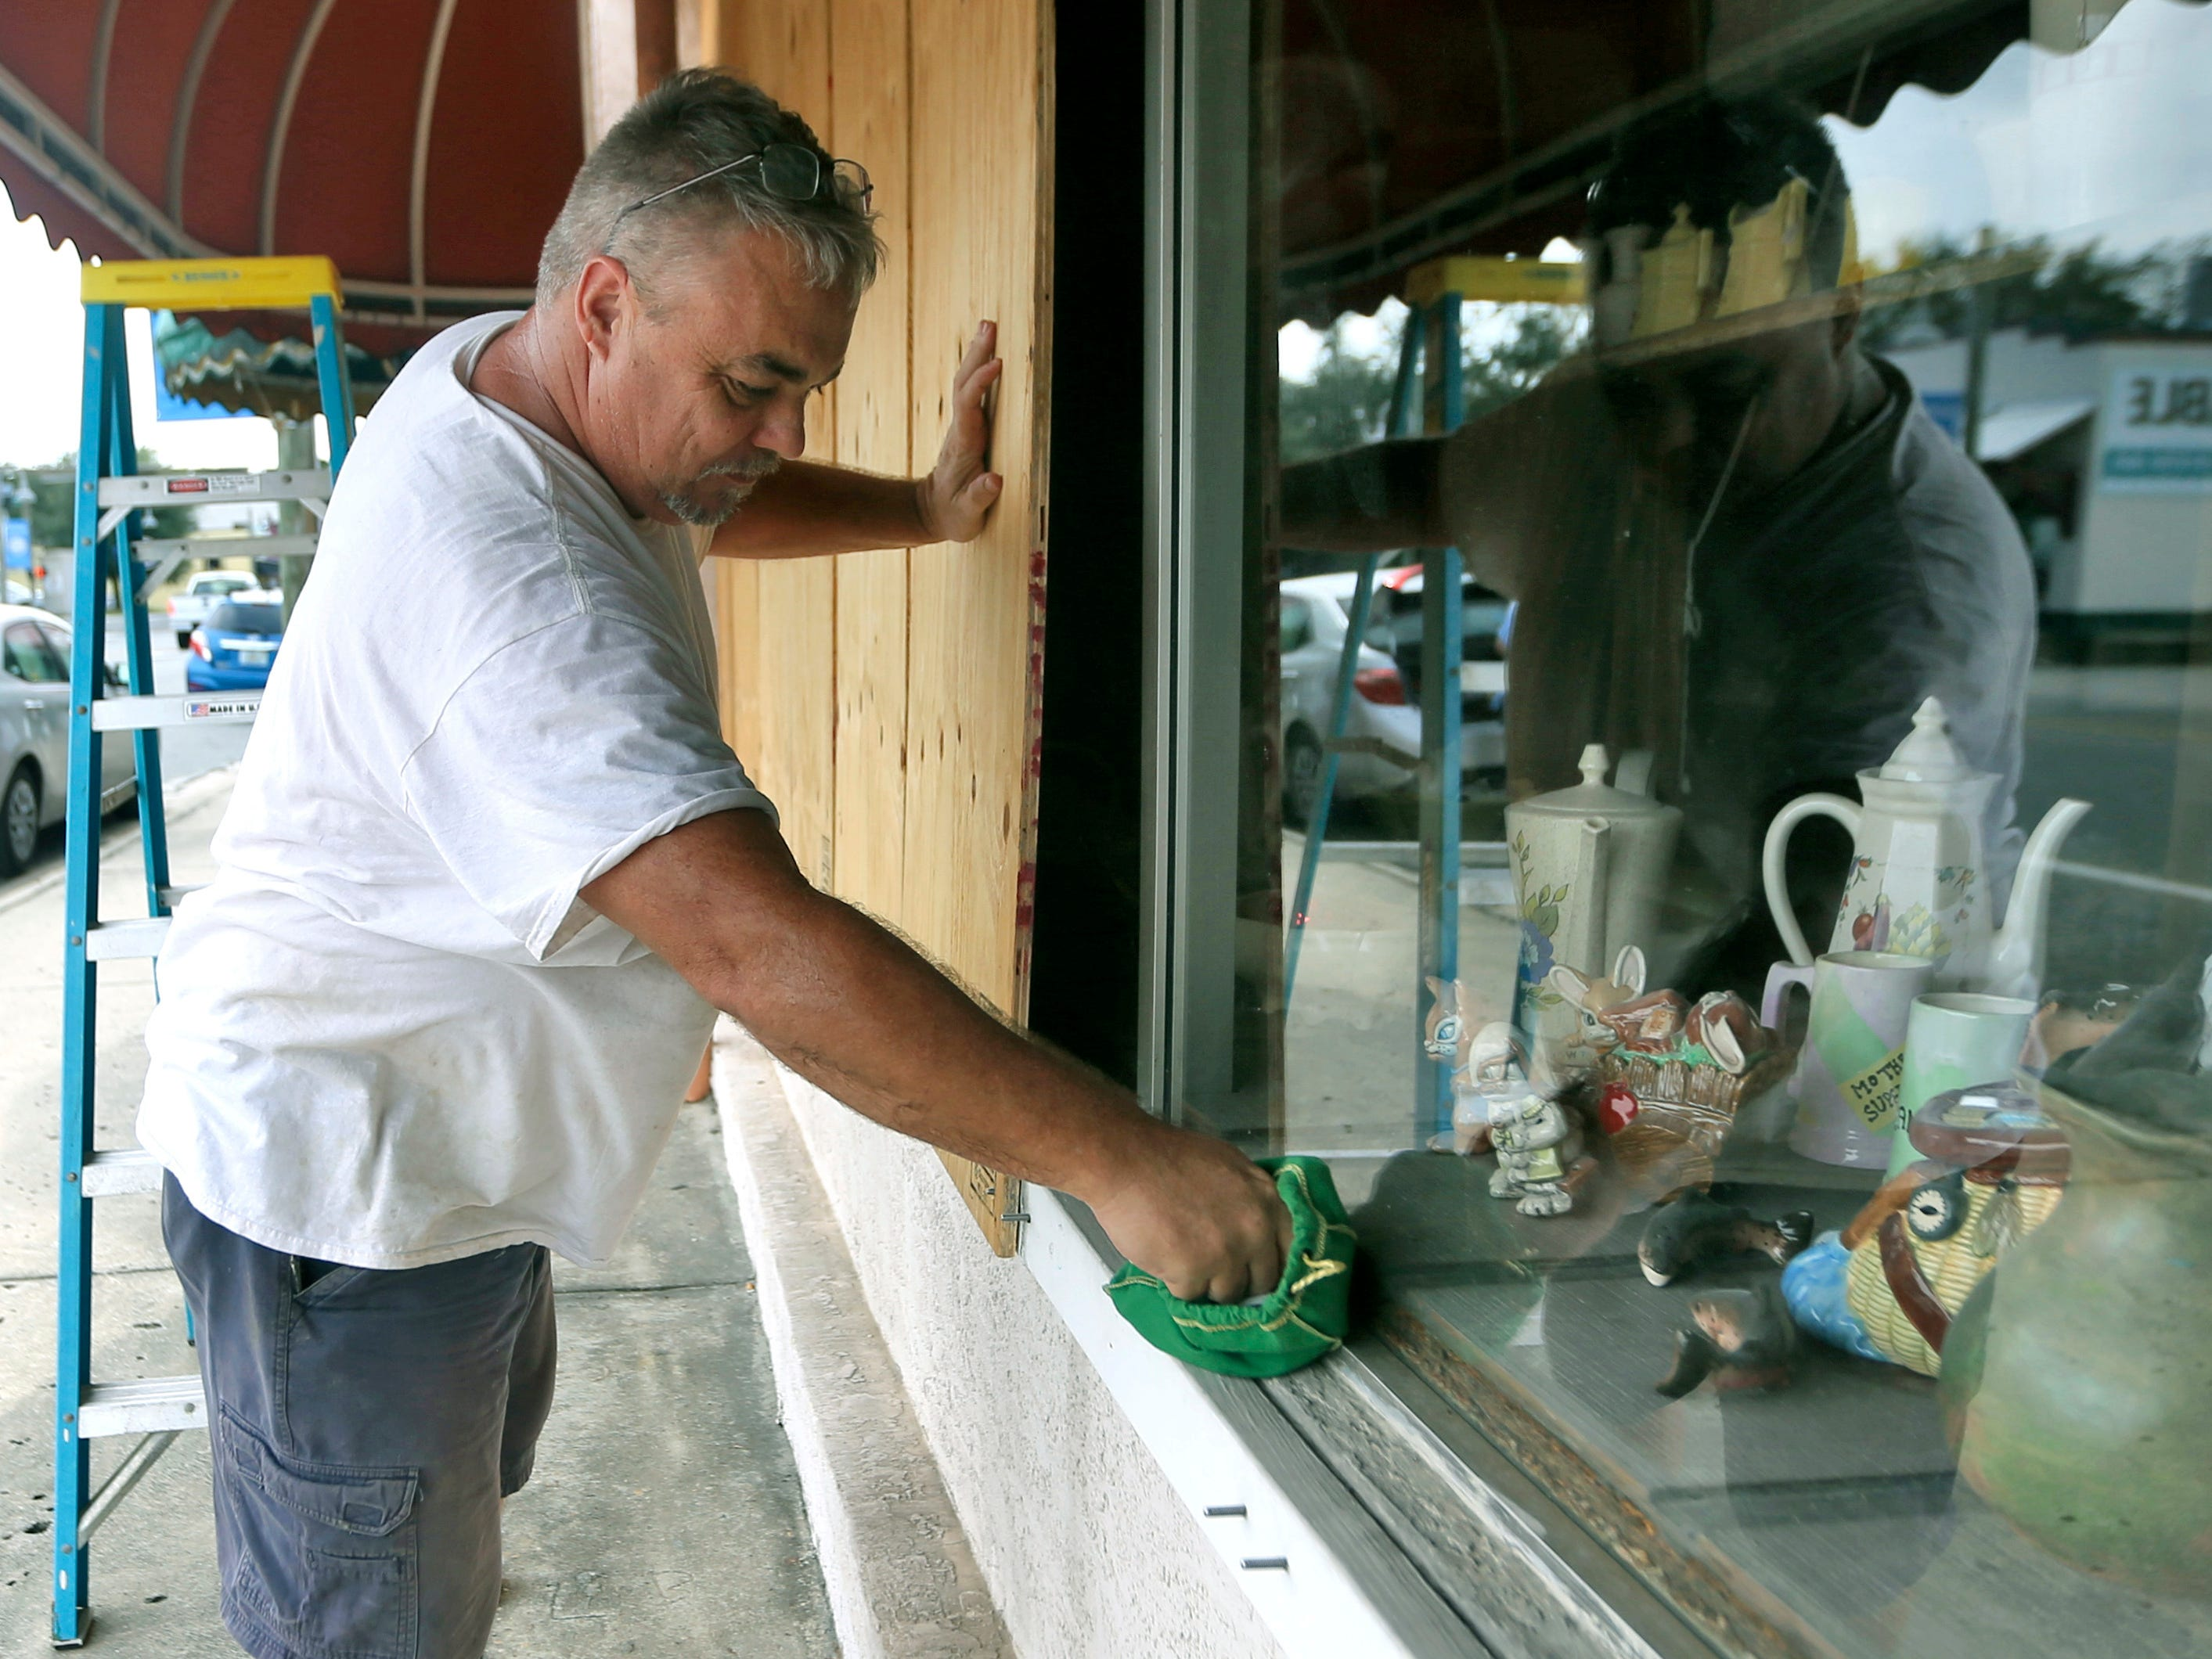 Bobby Smith boards up the windows at Jani's Ceramics in Panama City, Fla., on Oct. 8, 2018, in preparation for the arrival of Hurricane Michael.